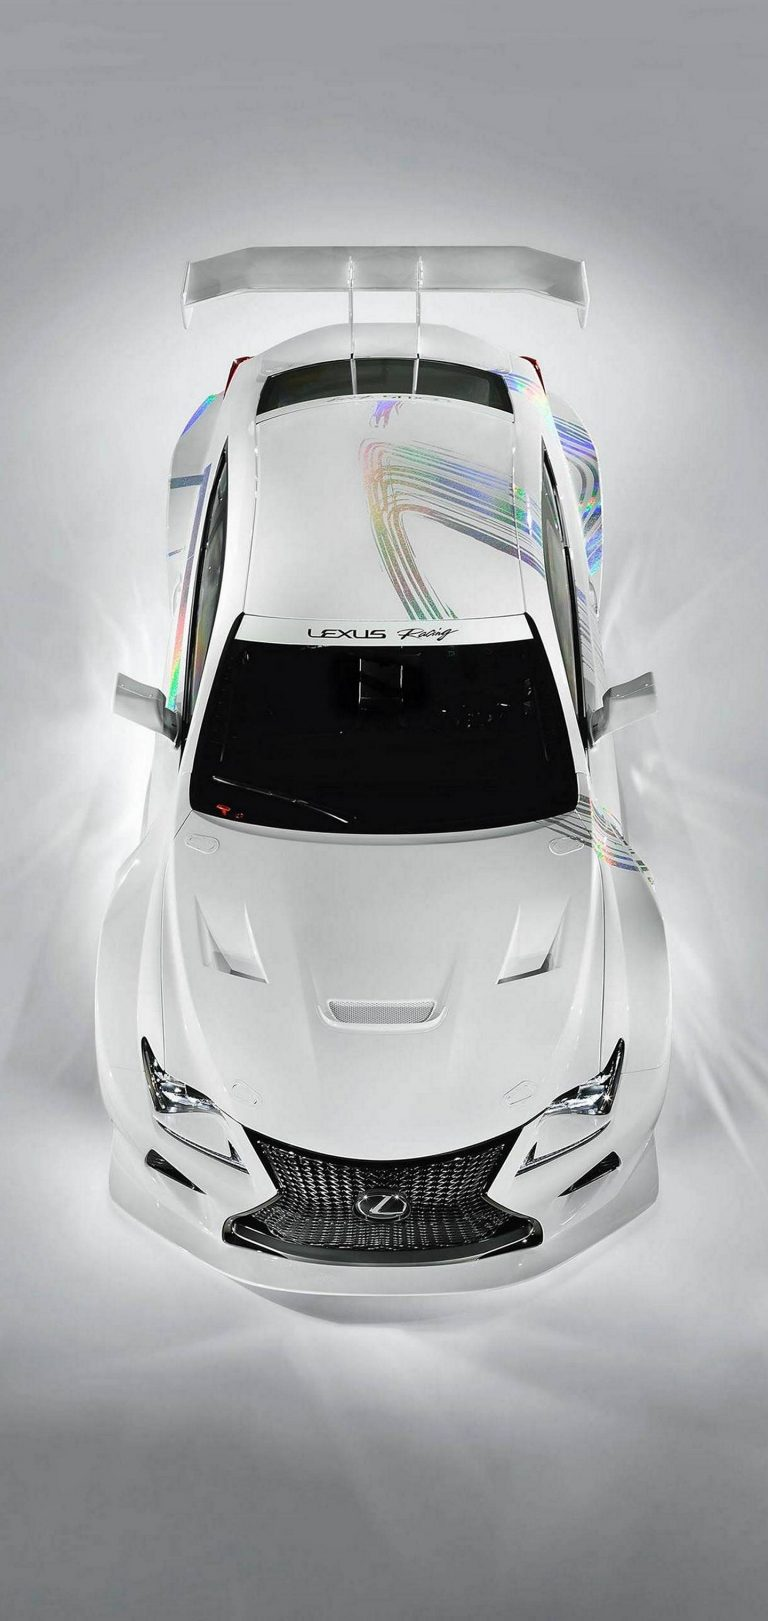 White Car Lexus Wallpaper 1440x3040 768x1621